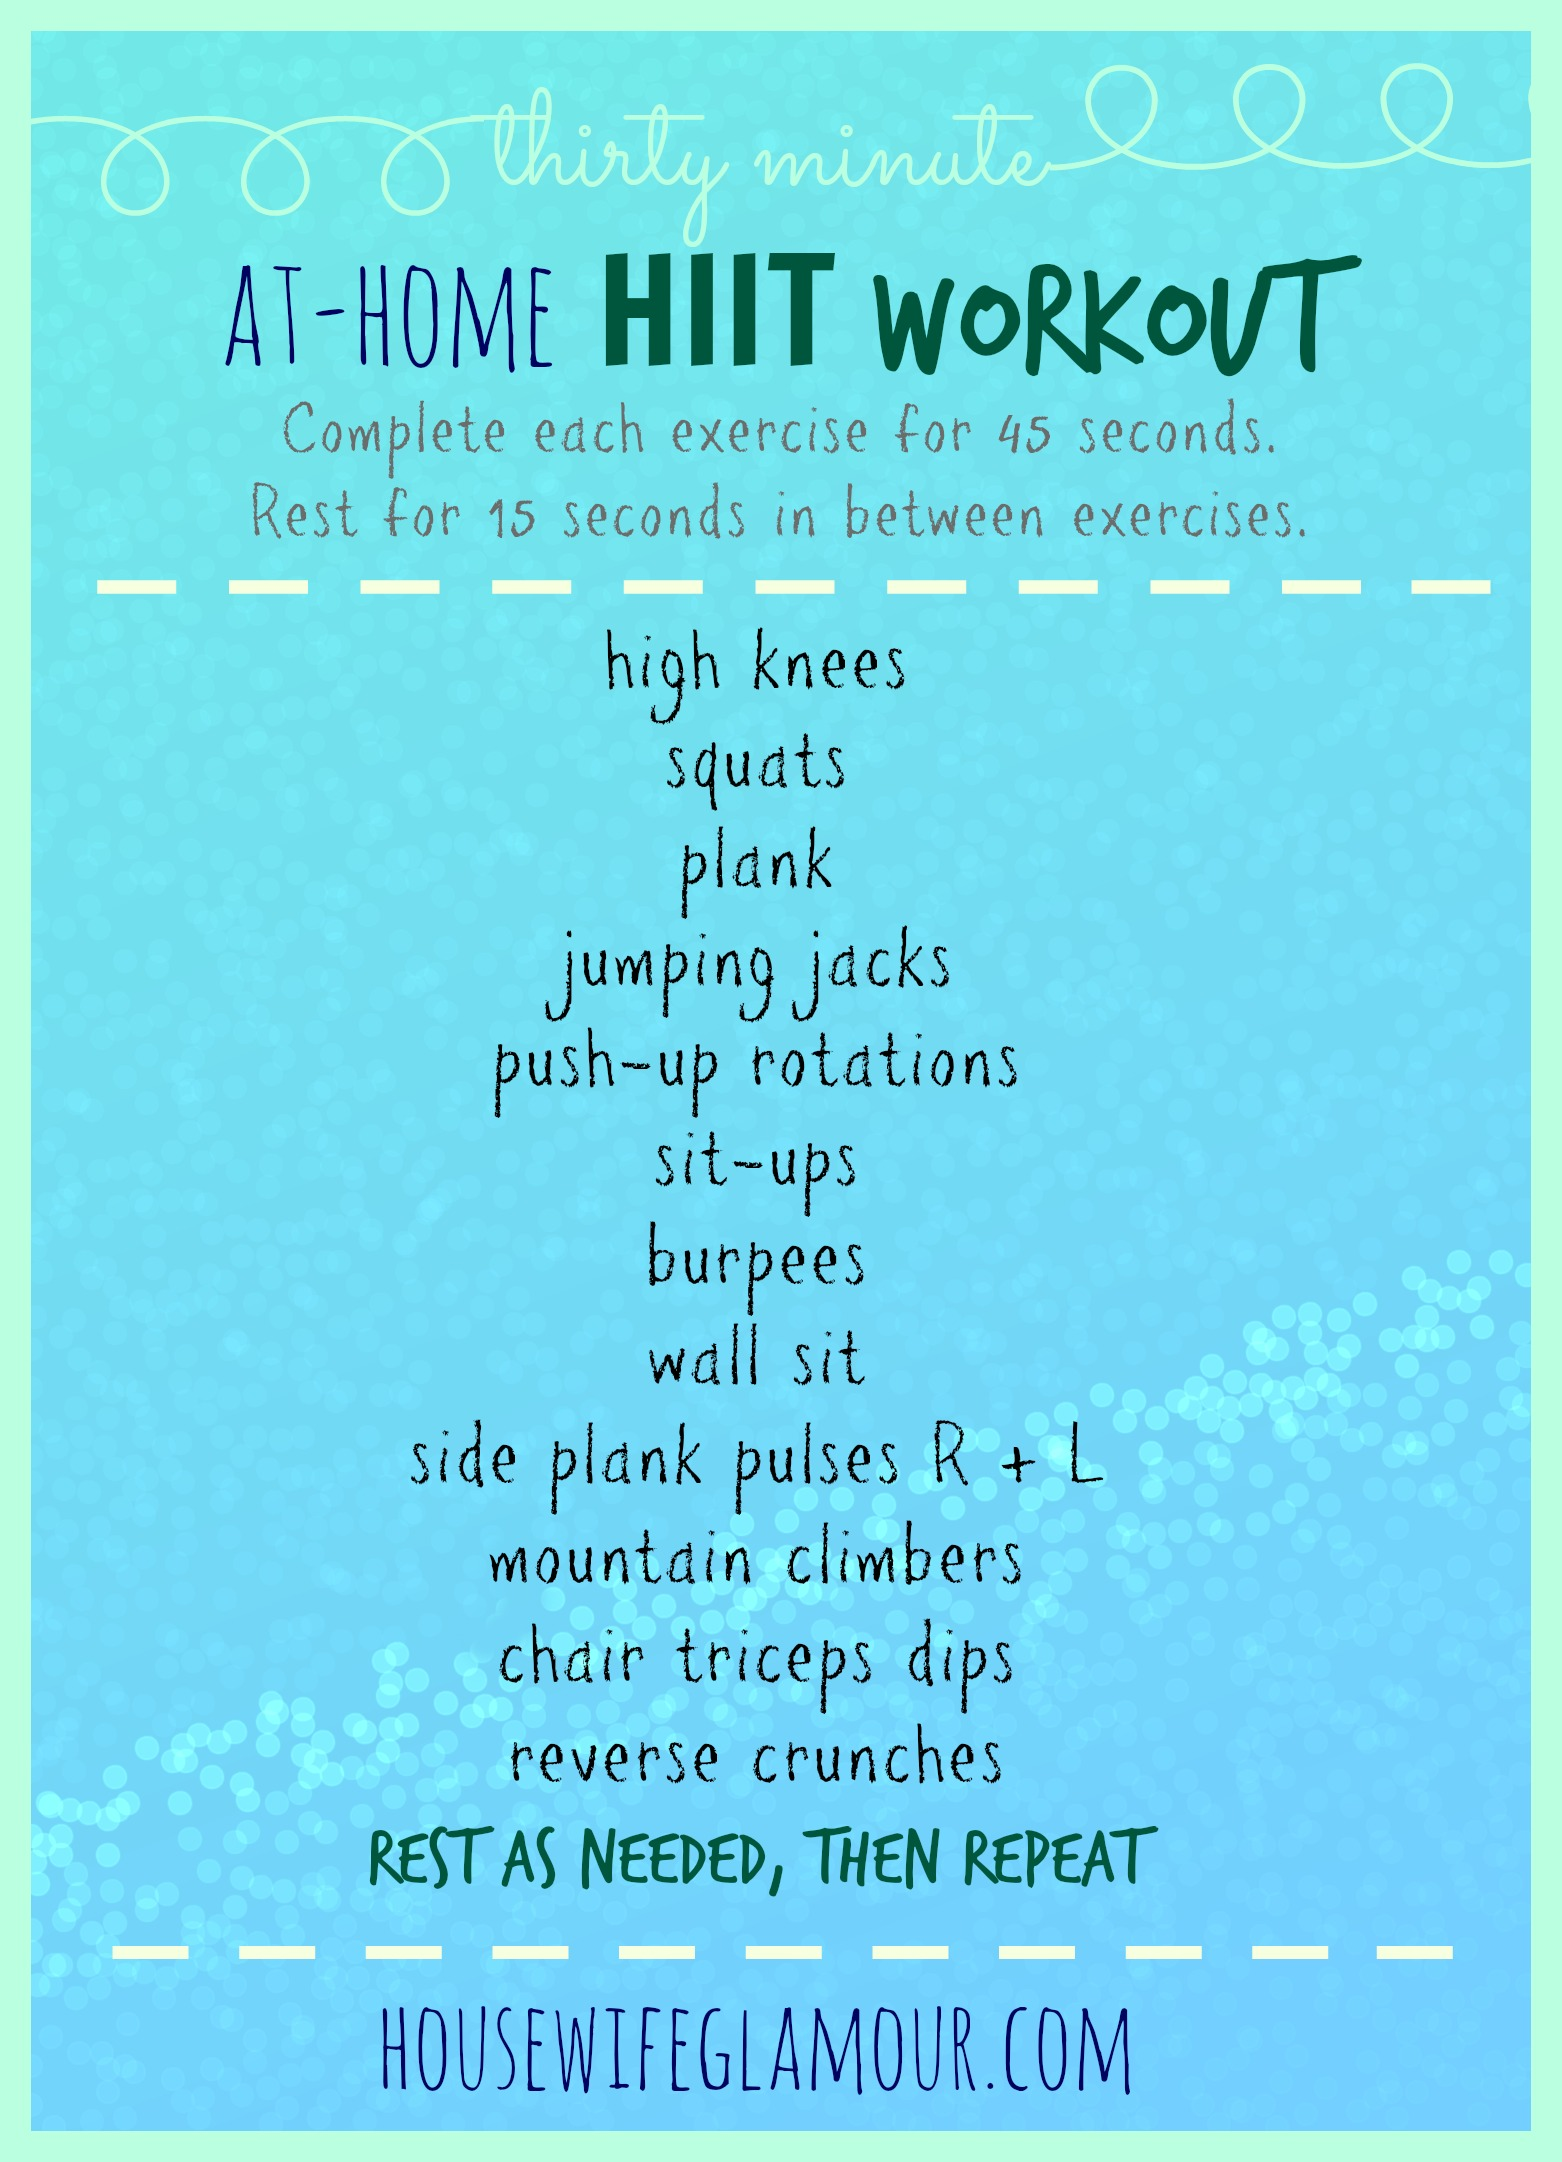 30 Min. At-Home HIIT Workout